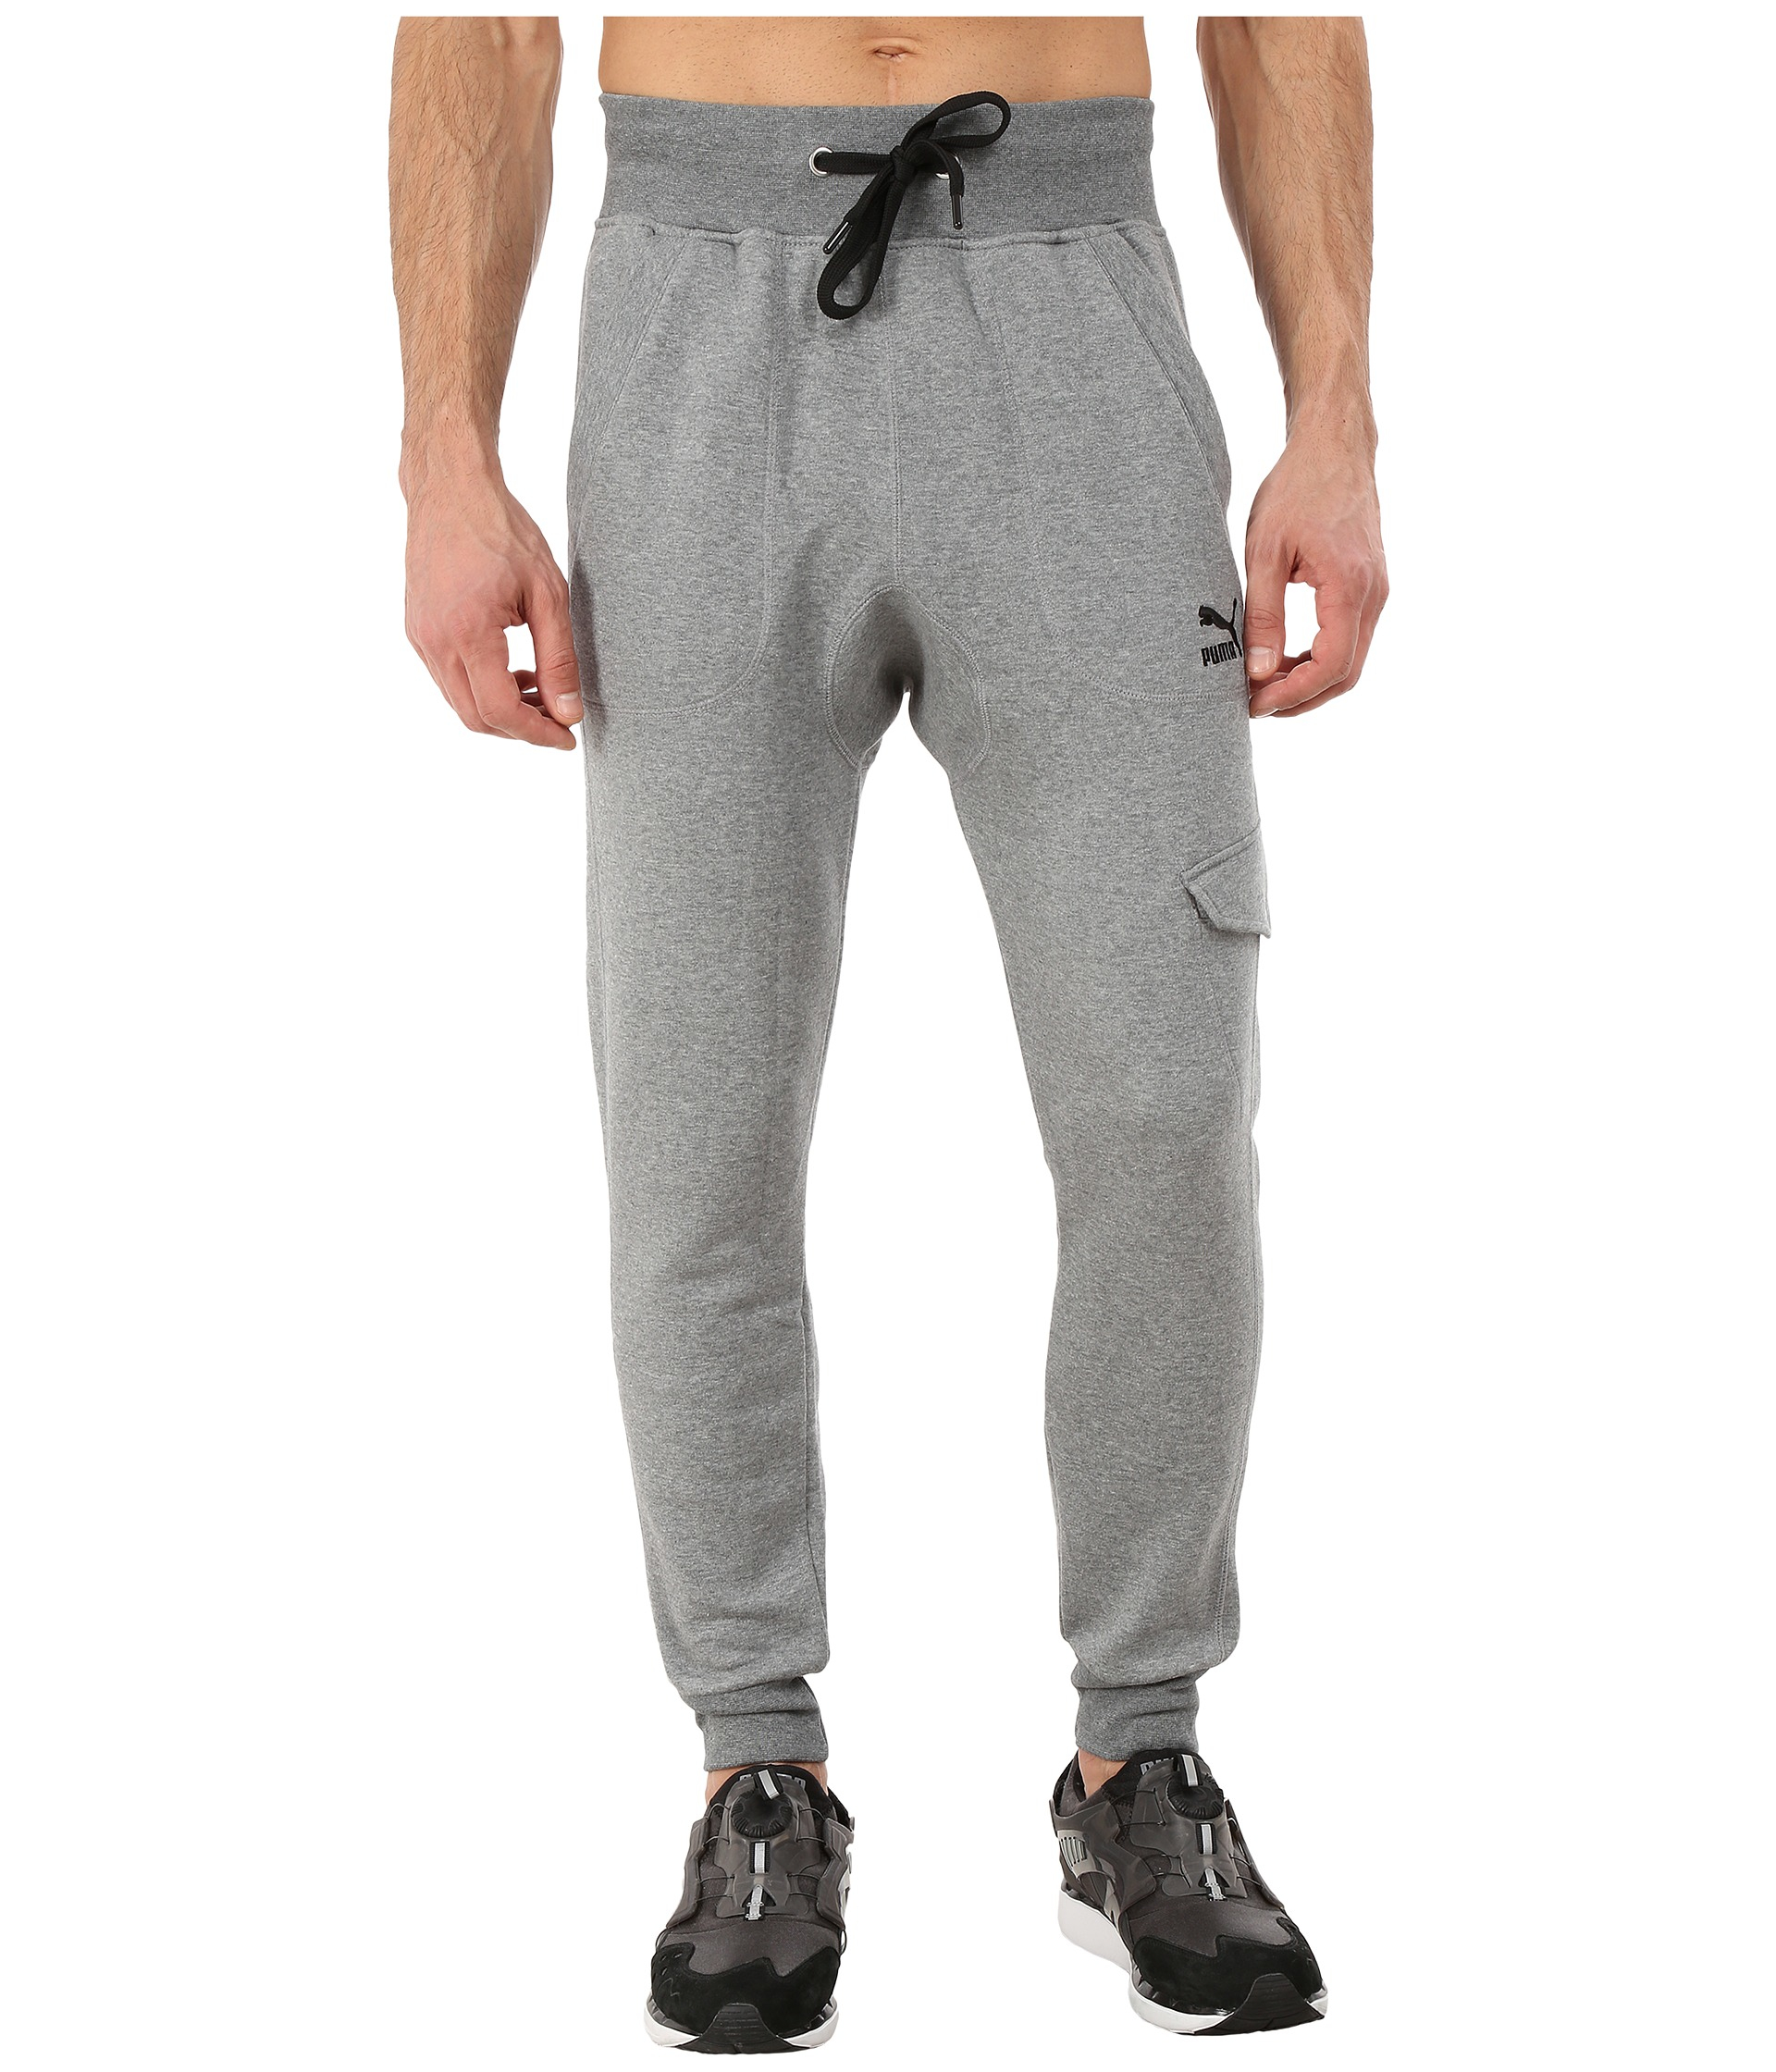 b785a68be825 Lyst - PUMA Cargo Sweat Pants in Gray for Men